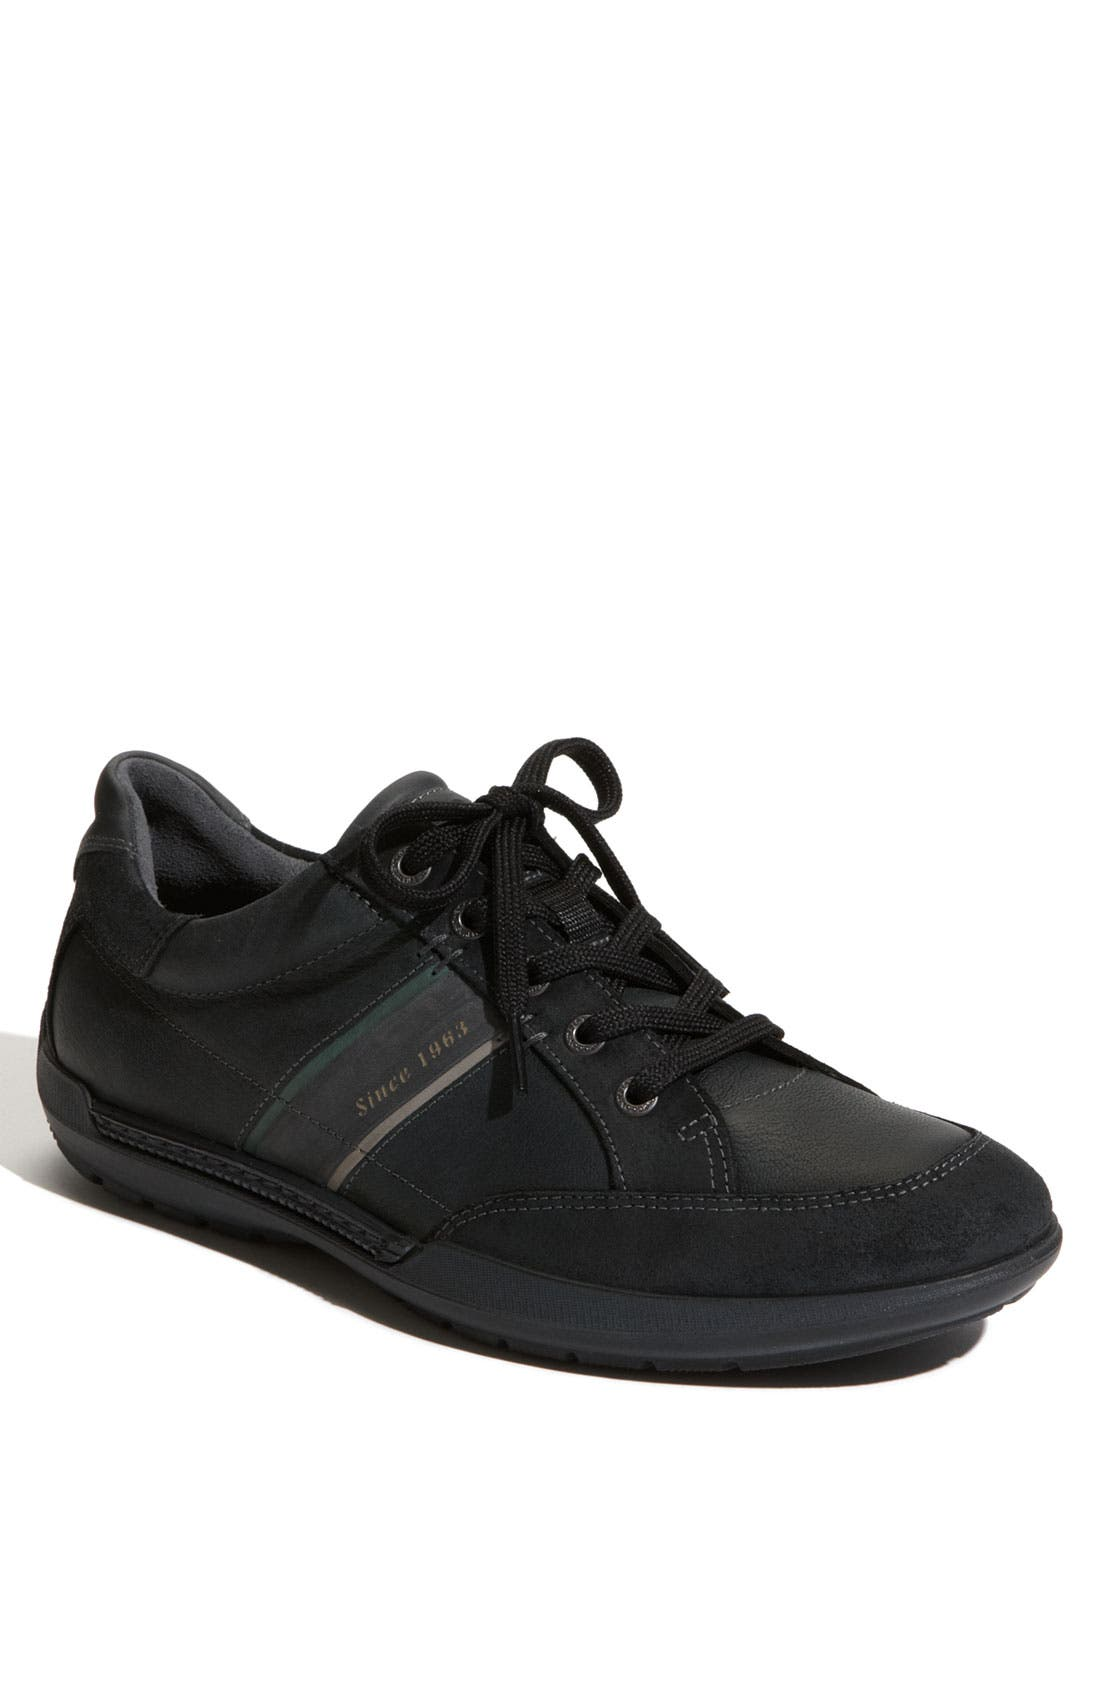 Alternate Image 1 Selected - ECCO 'Welt II' Sneaker